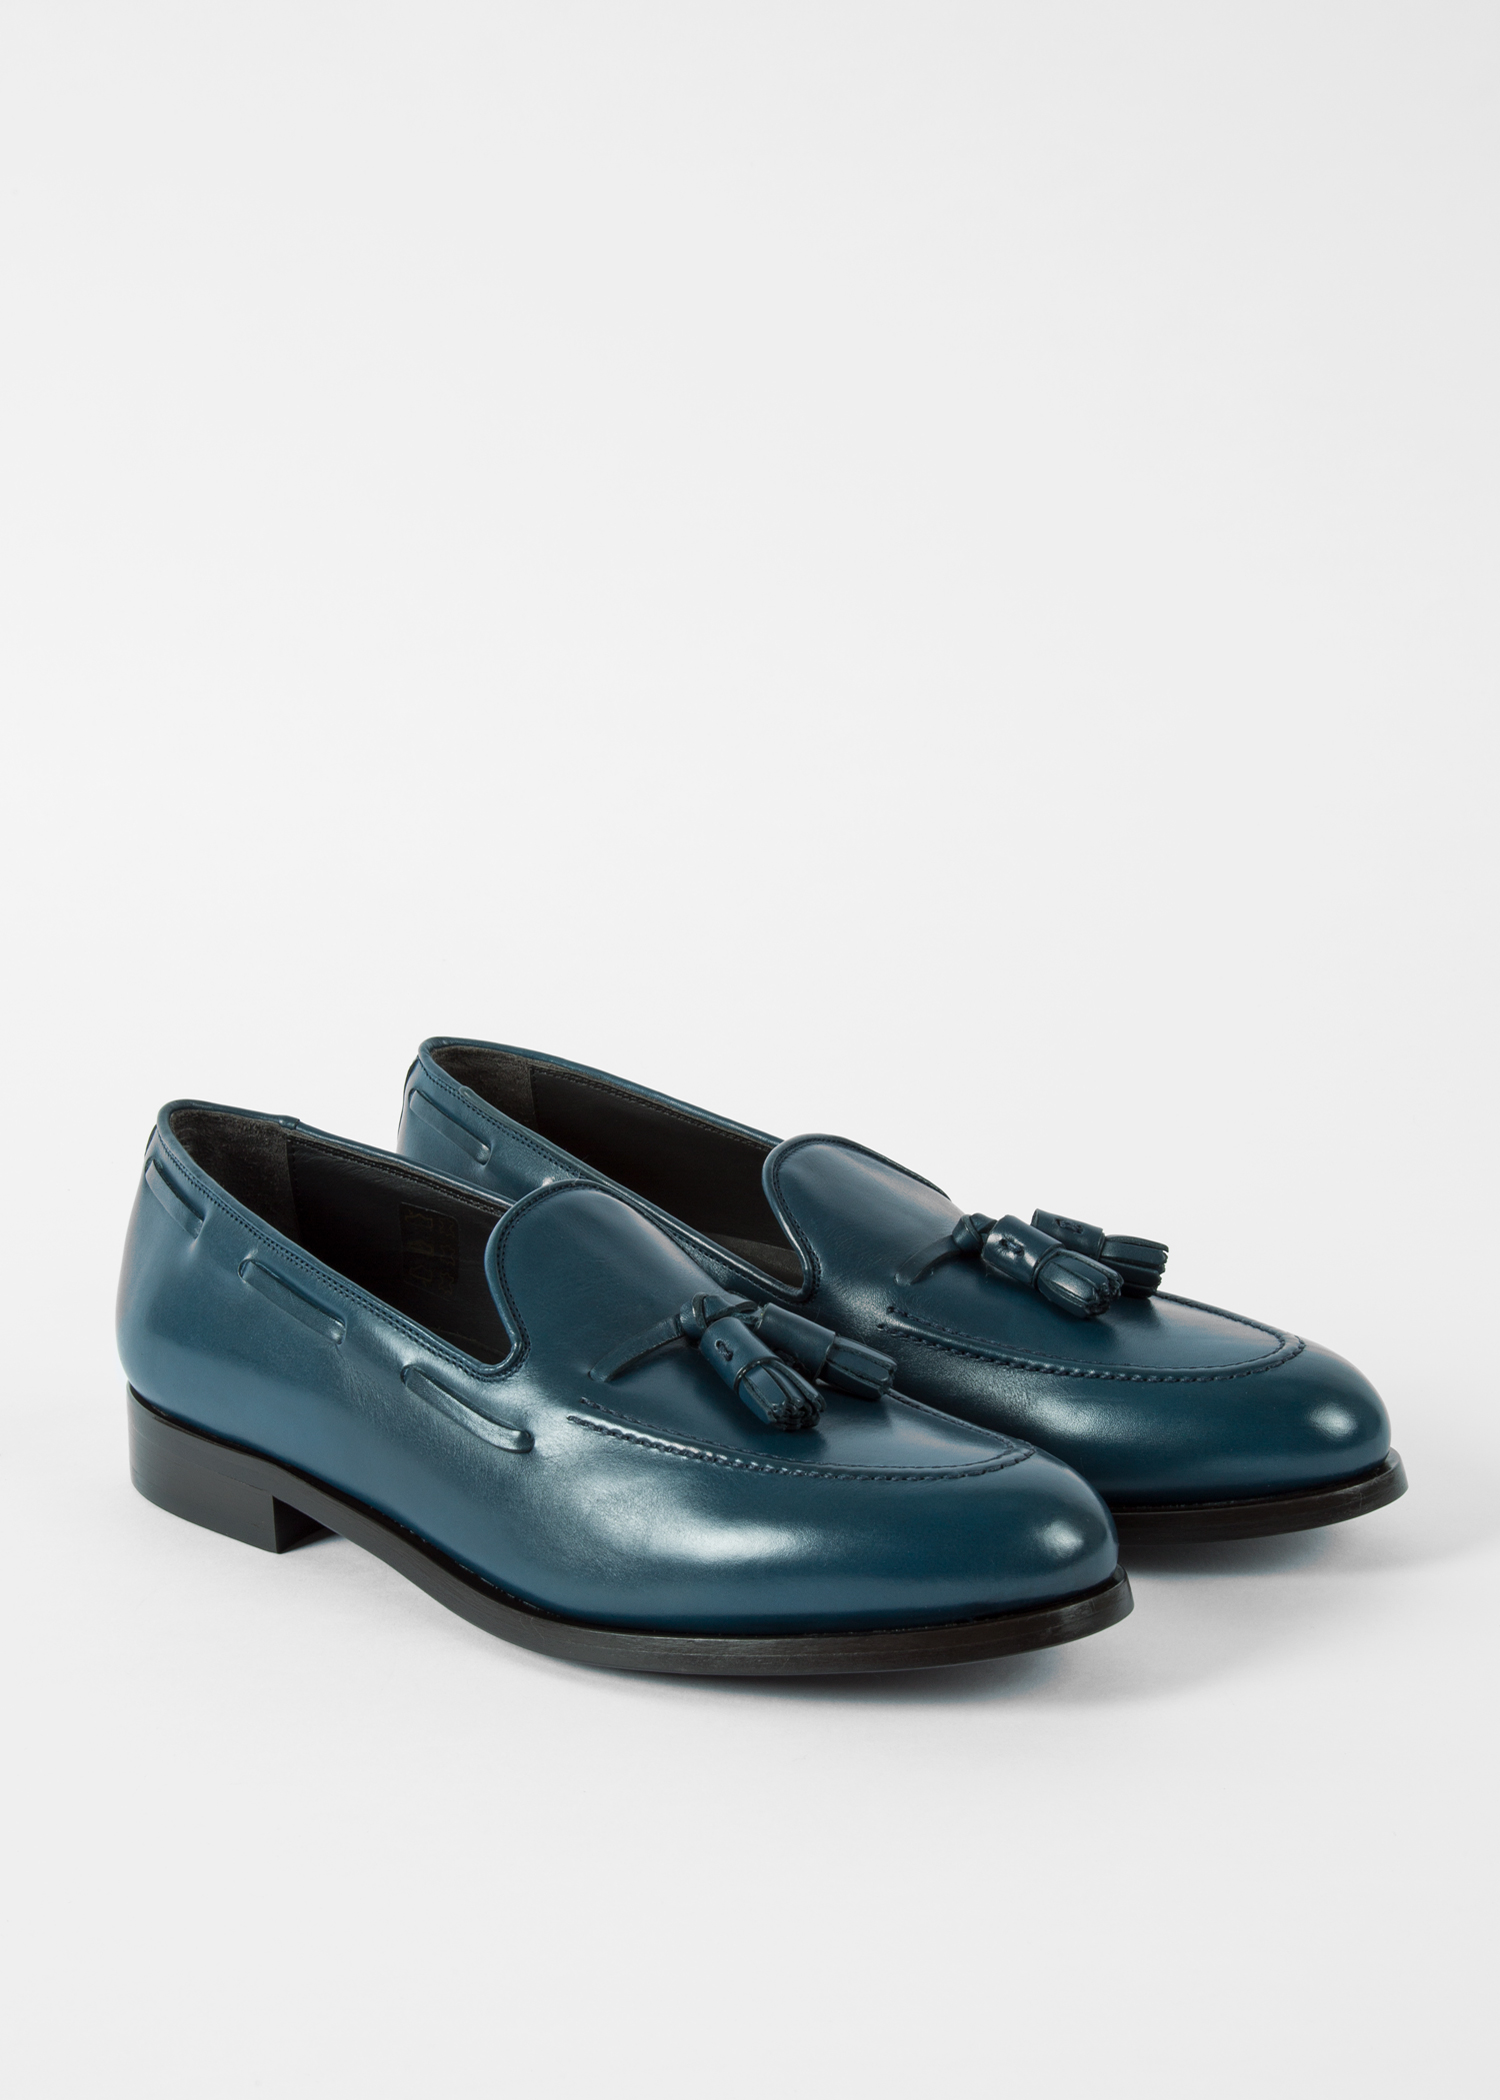 398a154d1bf Men s Navy Leather  Simmons  Tasseled Loafers - Paul Smith Asia